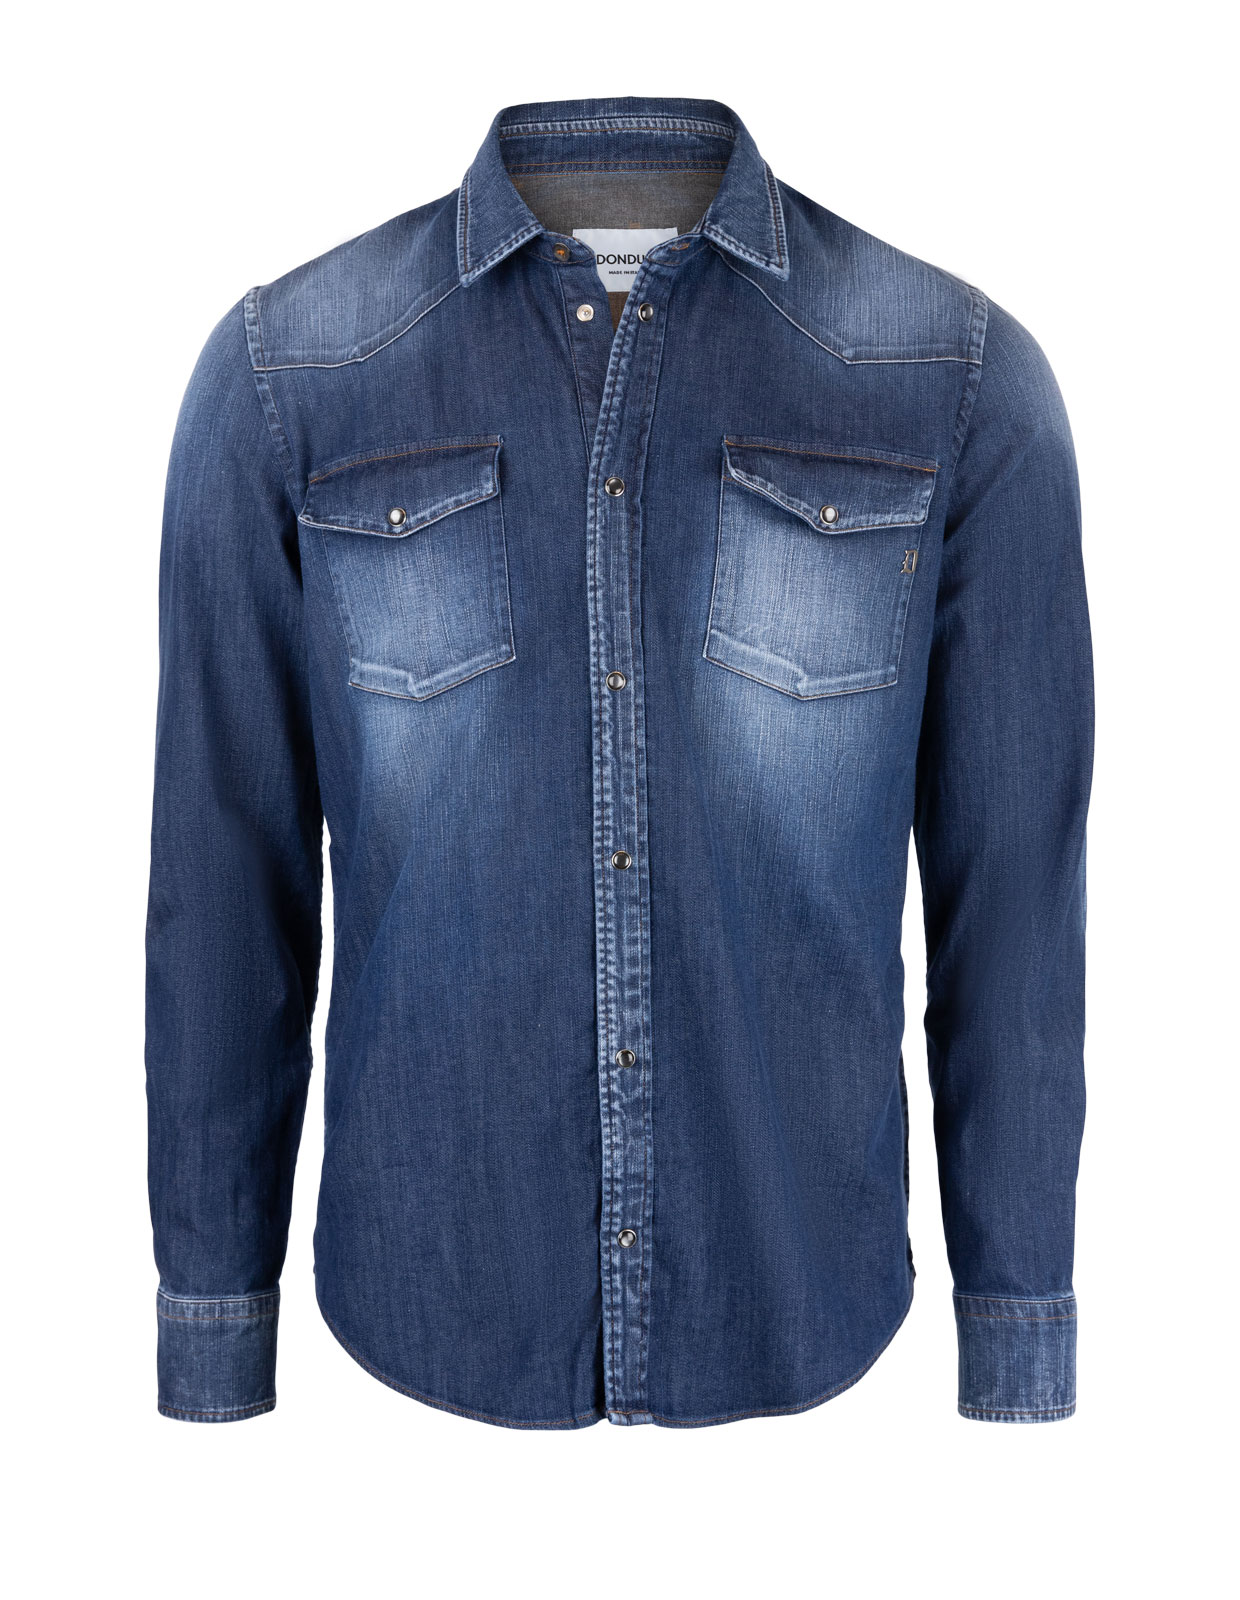 Denim Western Shirt Navy